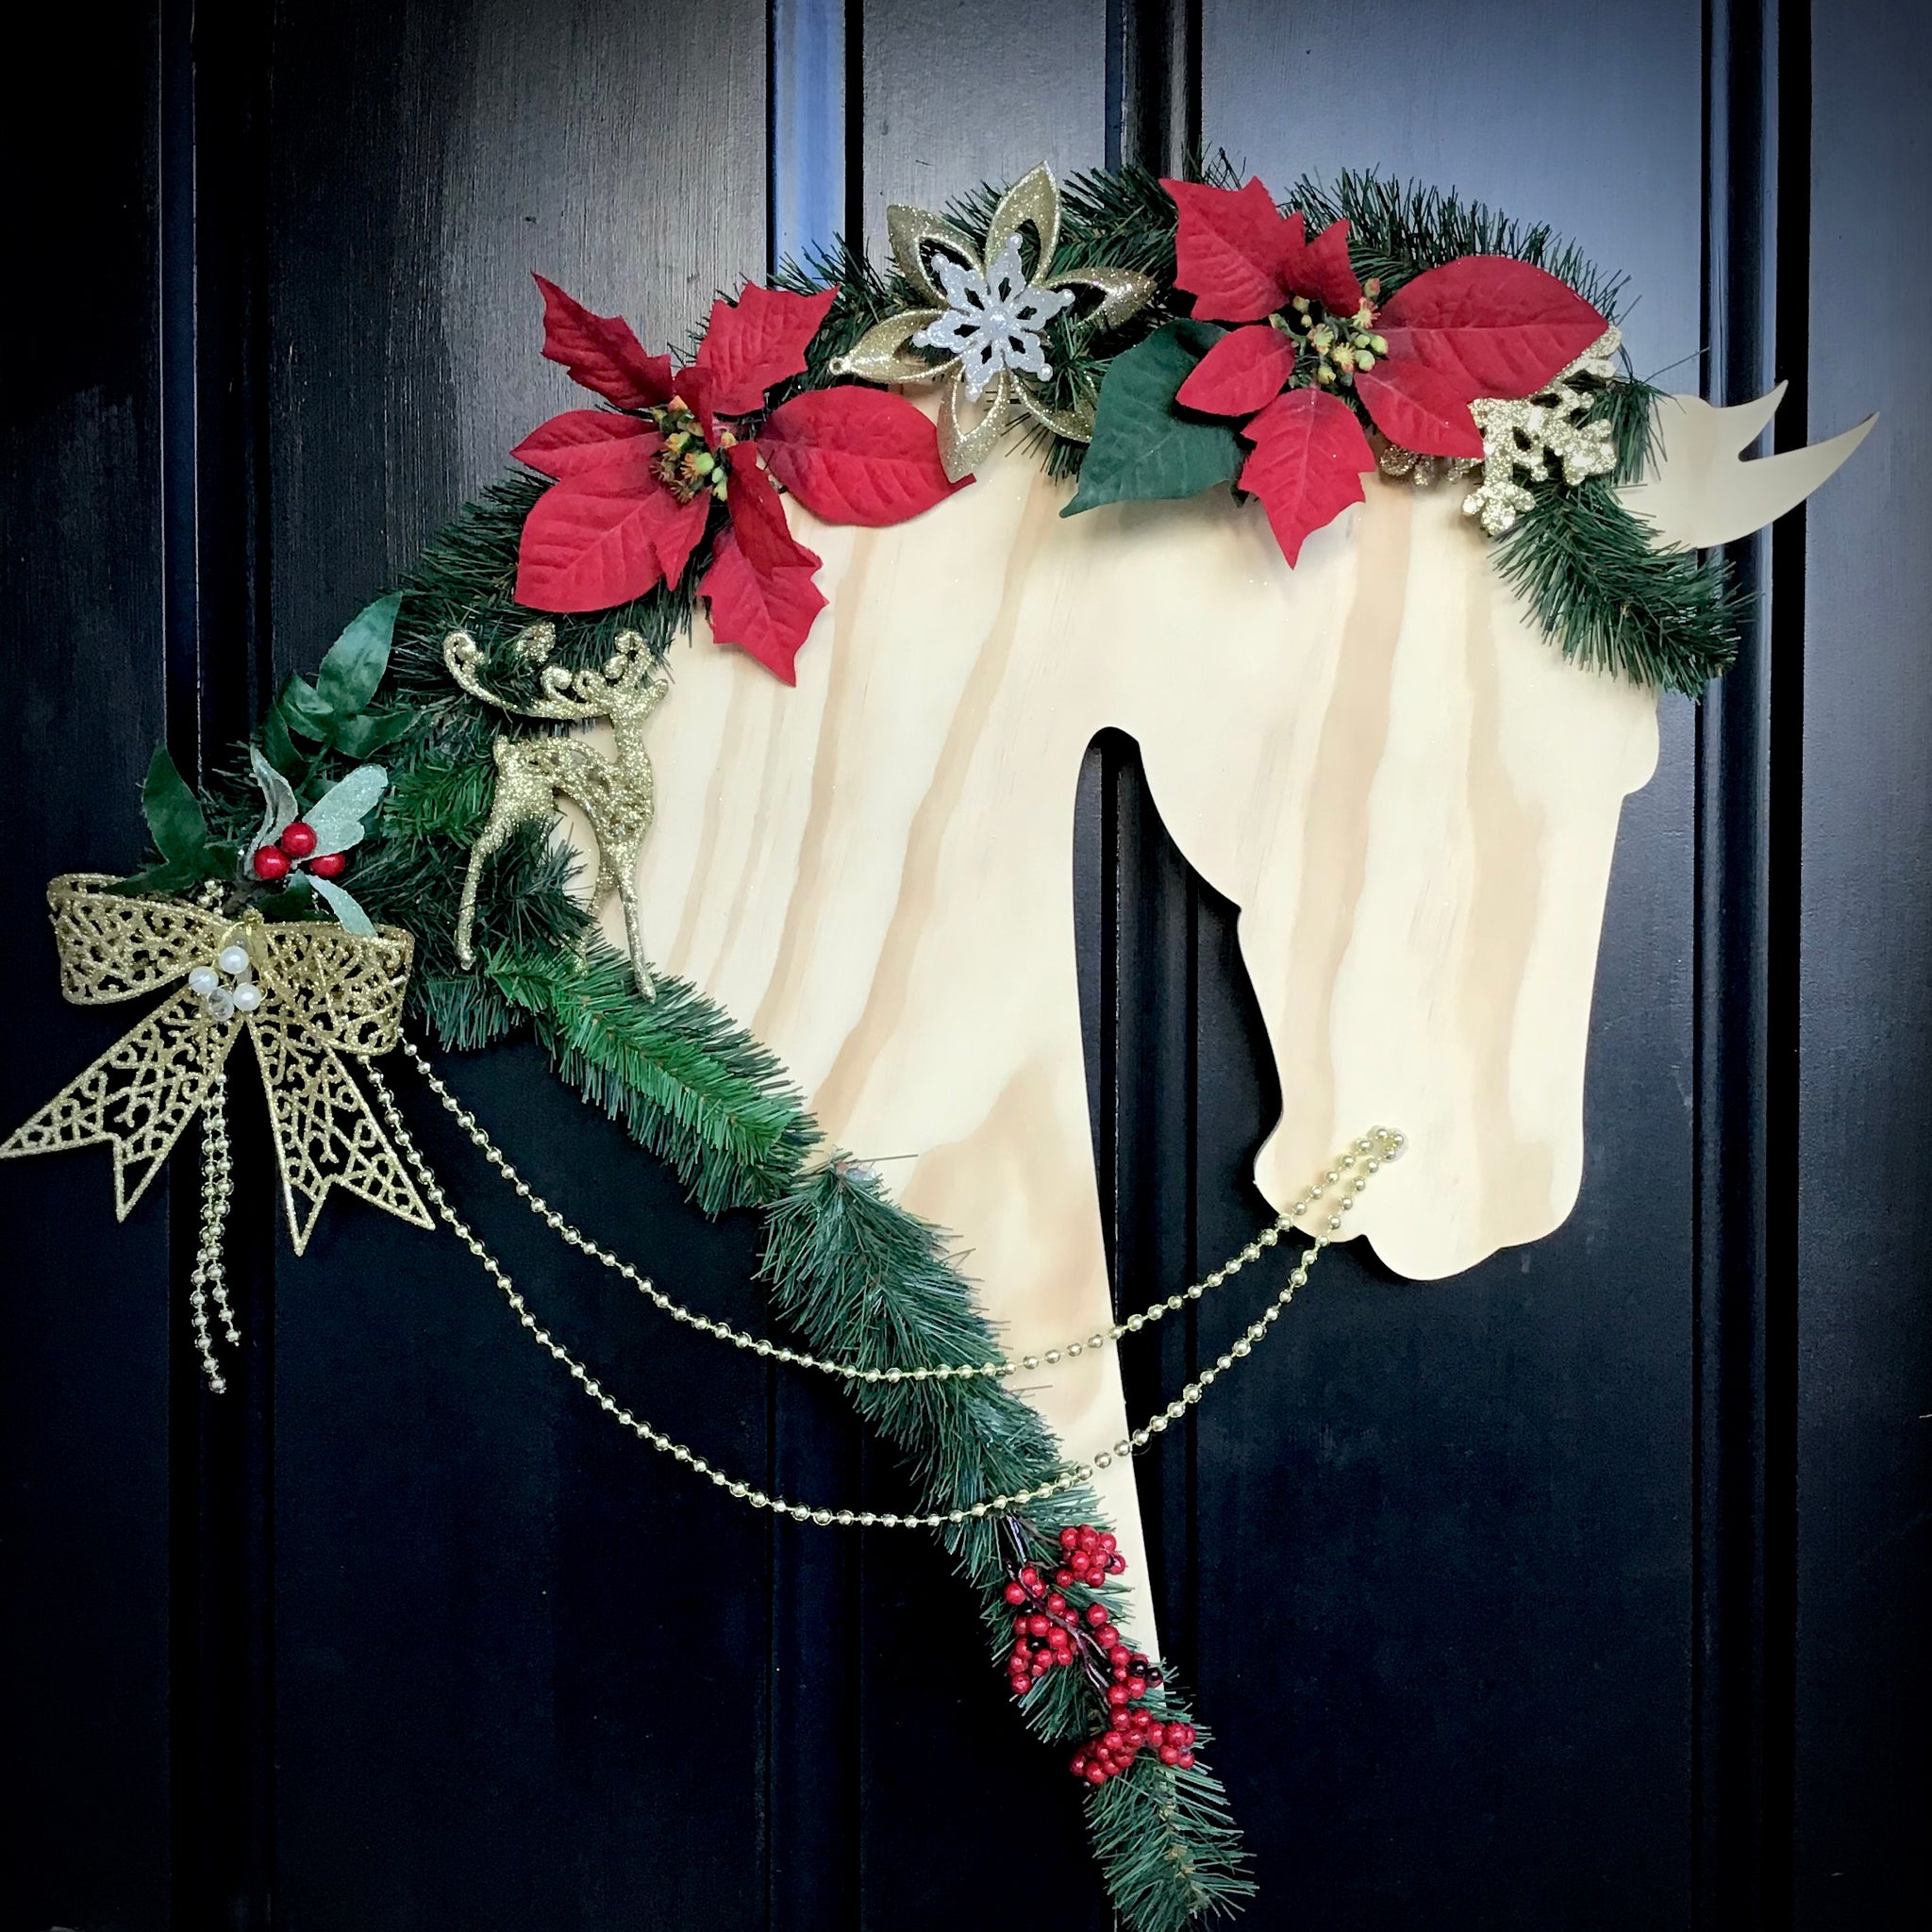 Horse Christmas Wreath: Bow - Horseshoe Mementoes